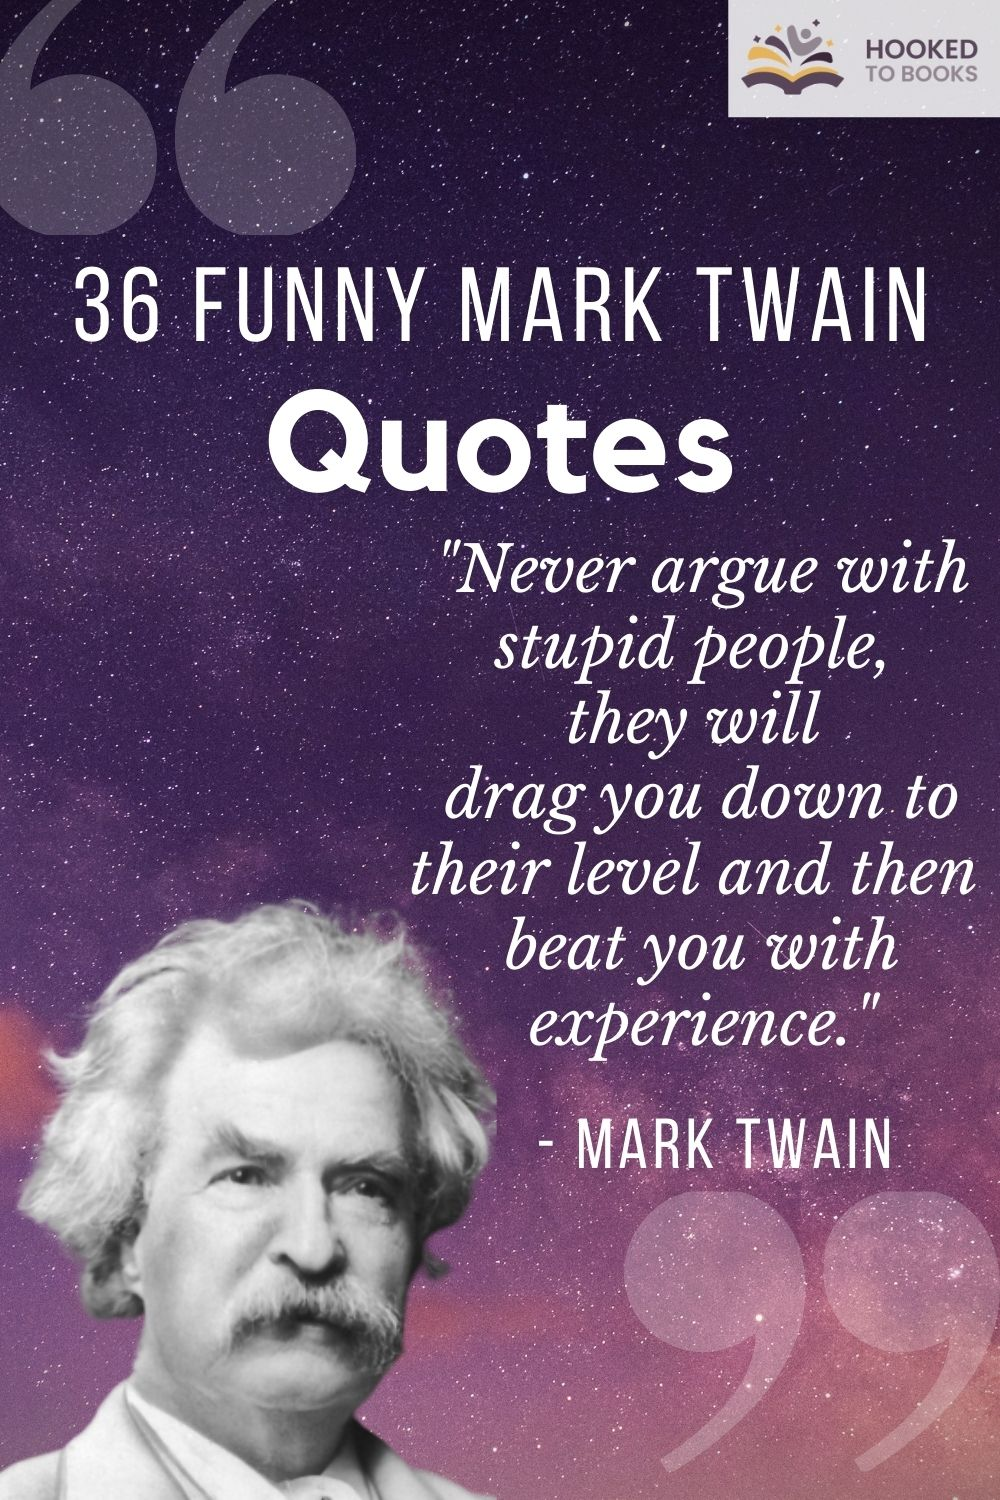 36 Funny Mark Twain Quotes Hooked To Books Mark Twain Quotes Funny Quotes Quotes